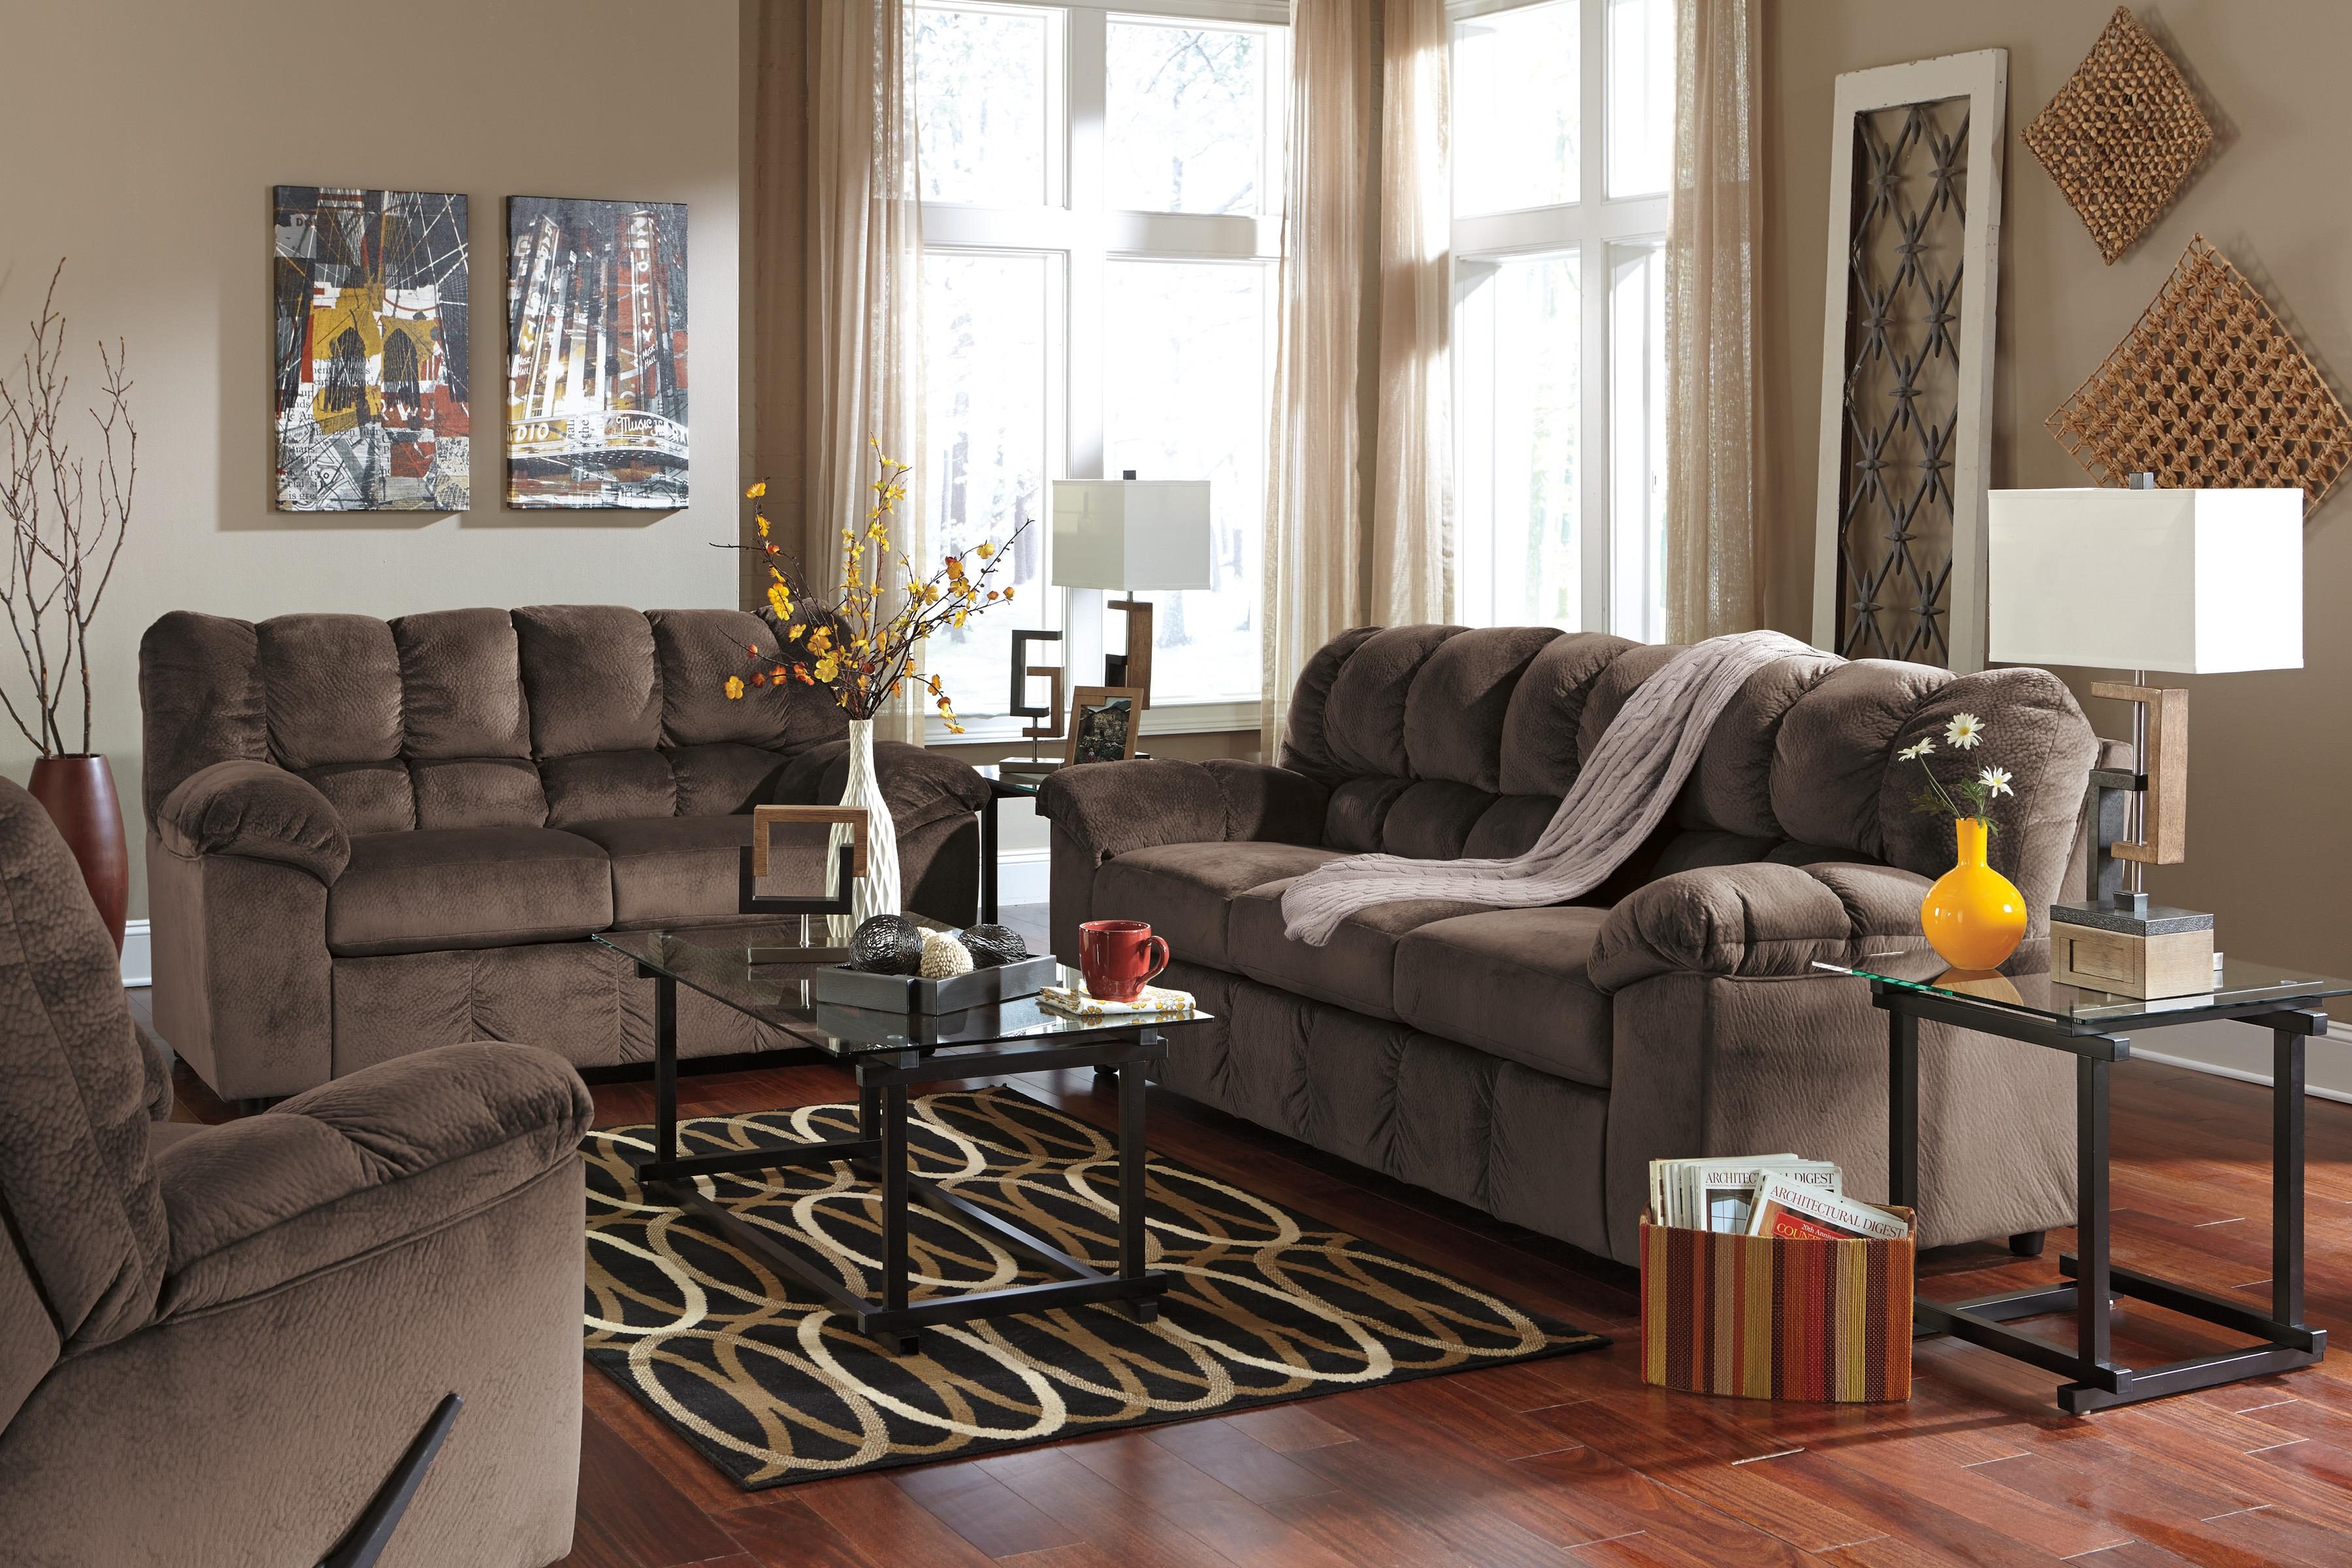 Signature Design by Ashley Julson - Cafe Stationary Living Room Group - Item Number: 26604 Living Room Group 2